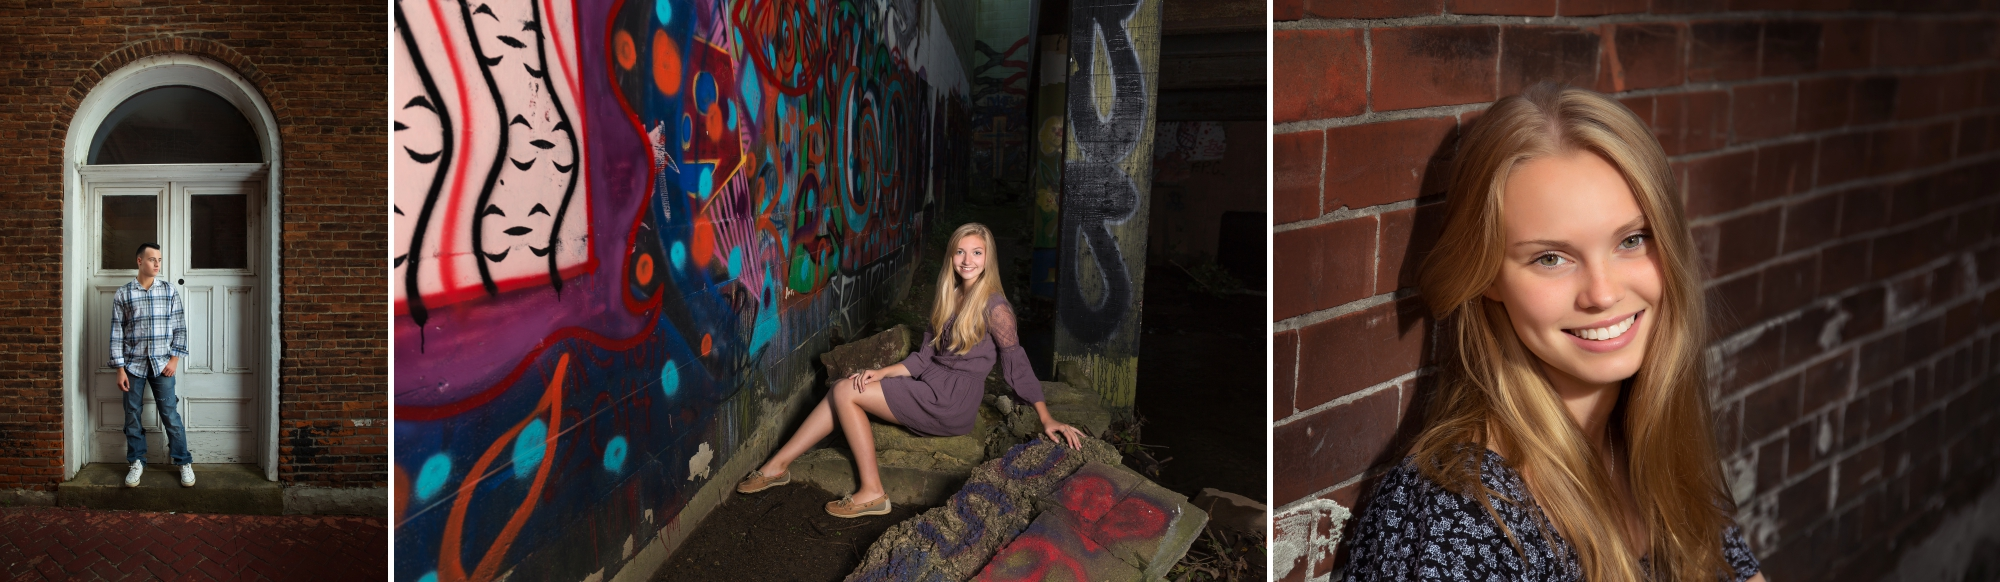 Springville Senior Photographer Girls Urban Graffiti